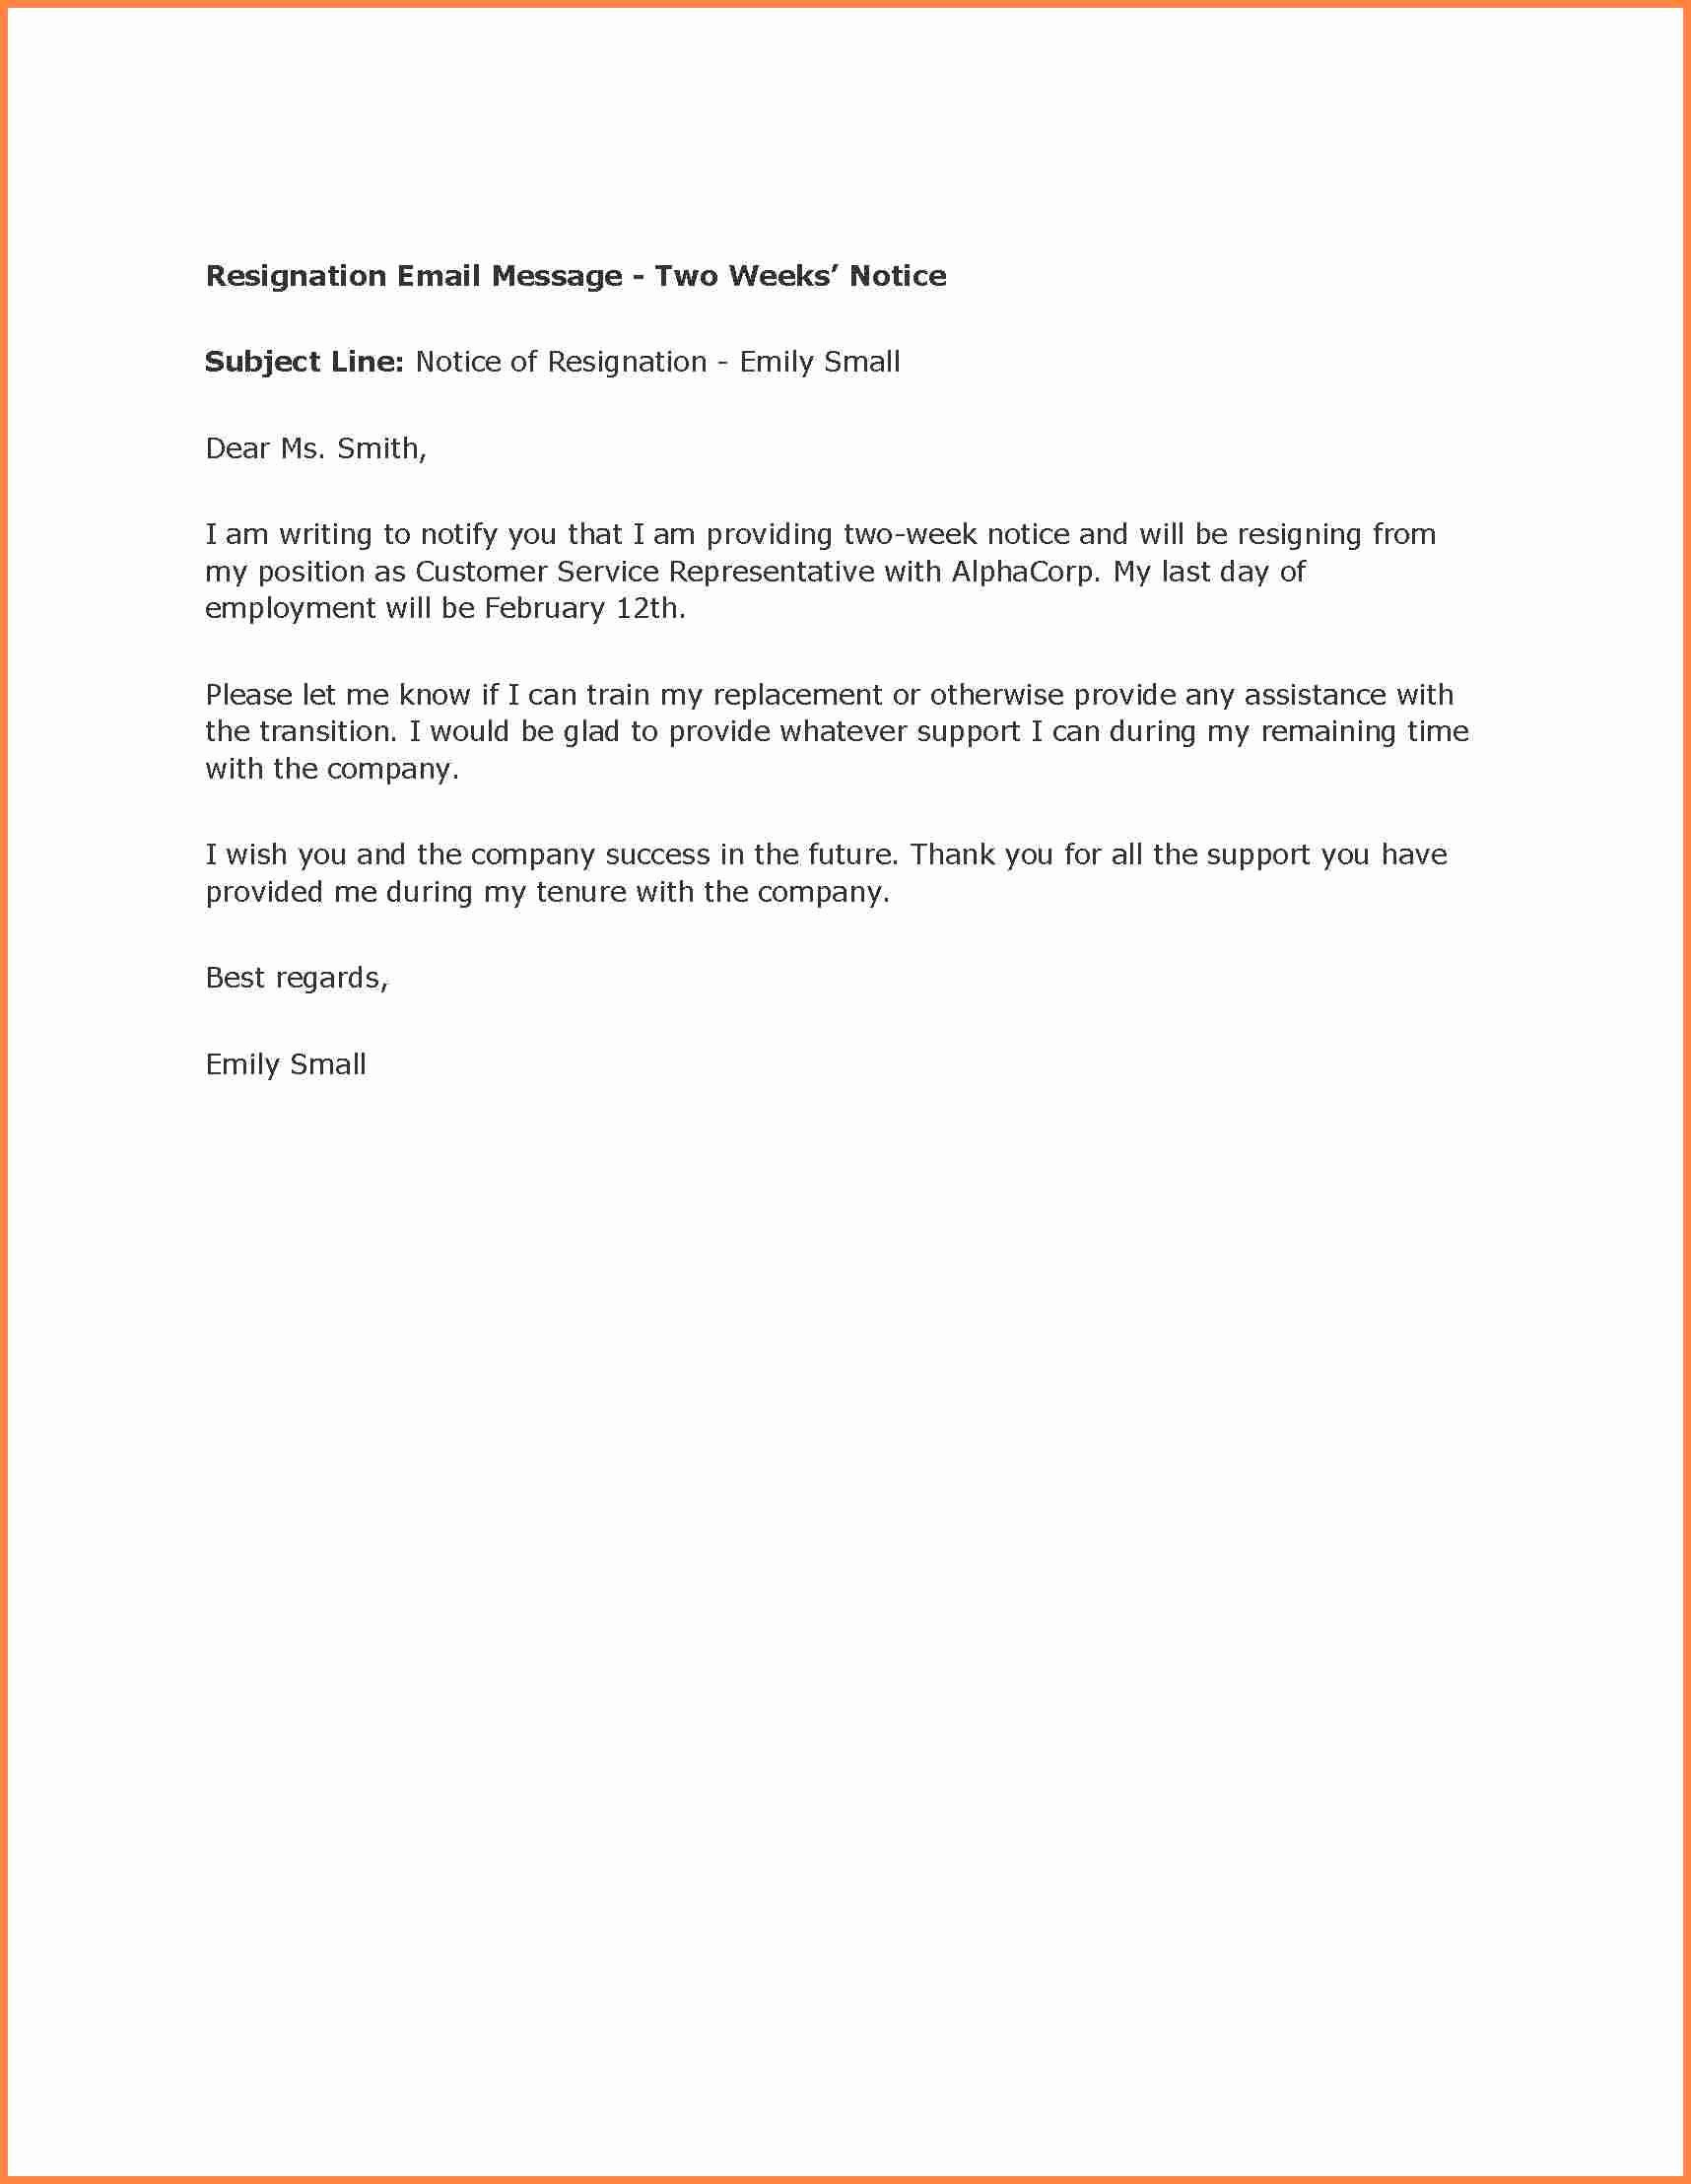 Two Week Resignation Letter Awesome 3 Simple Resignation Letter 2 Weeks Notice